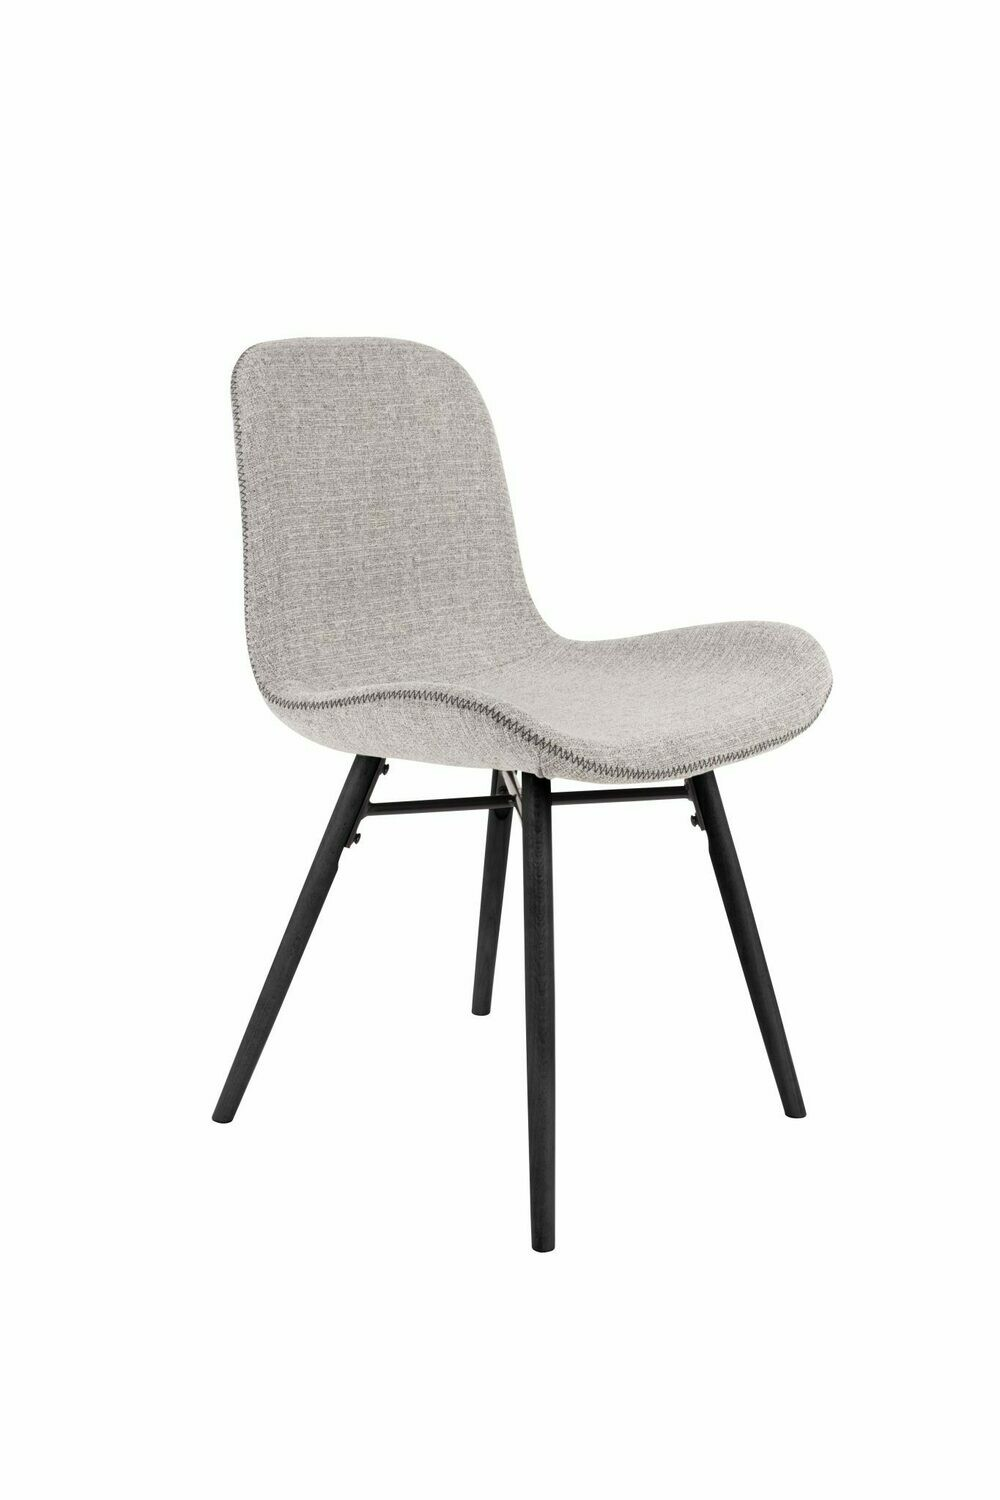 Chair Lester